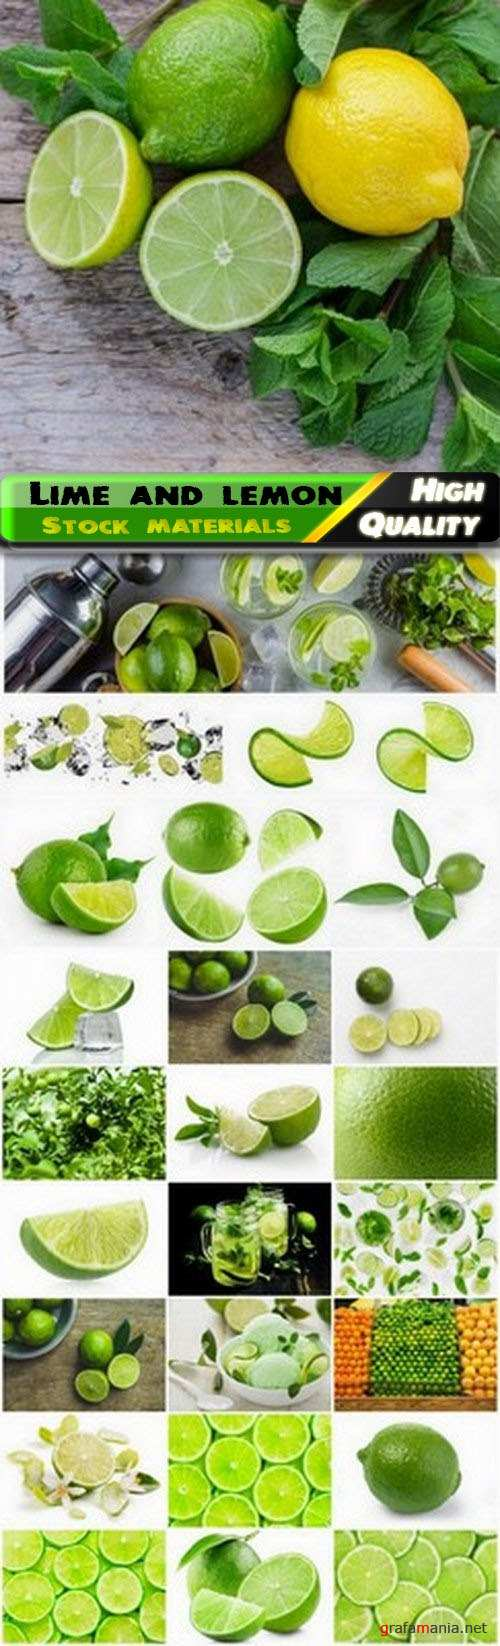 Lime fruit and slices of green lemon 25 HQ Jpg